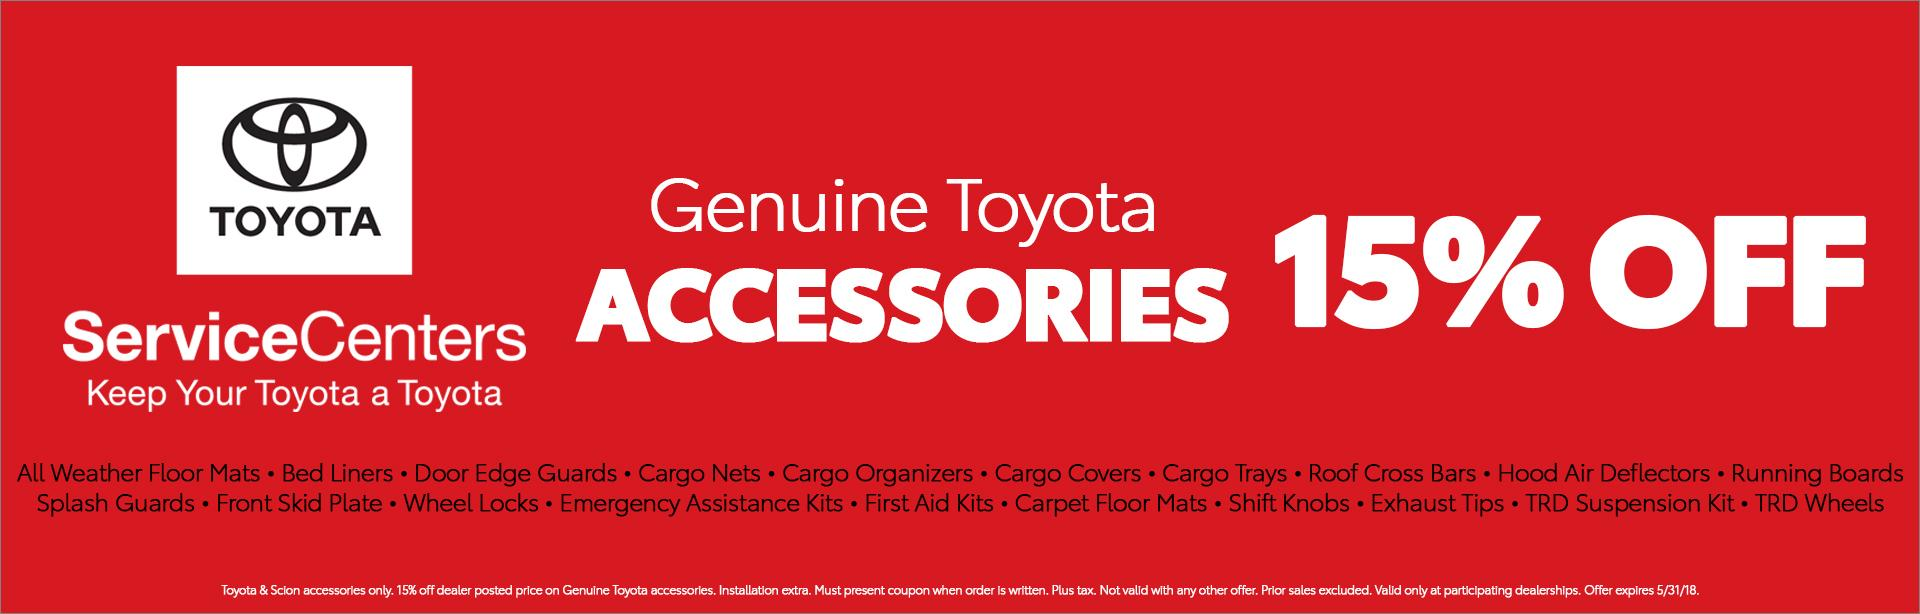 Toyota Accessories Special